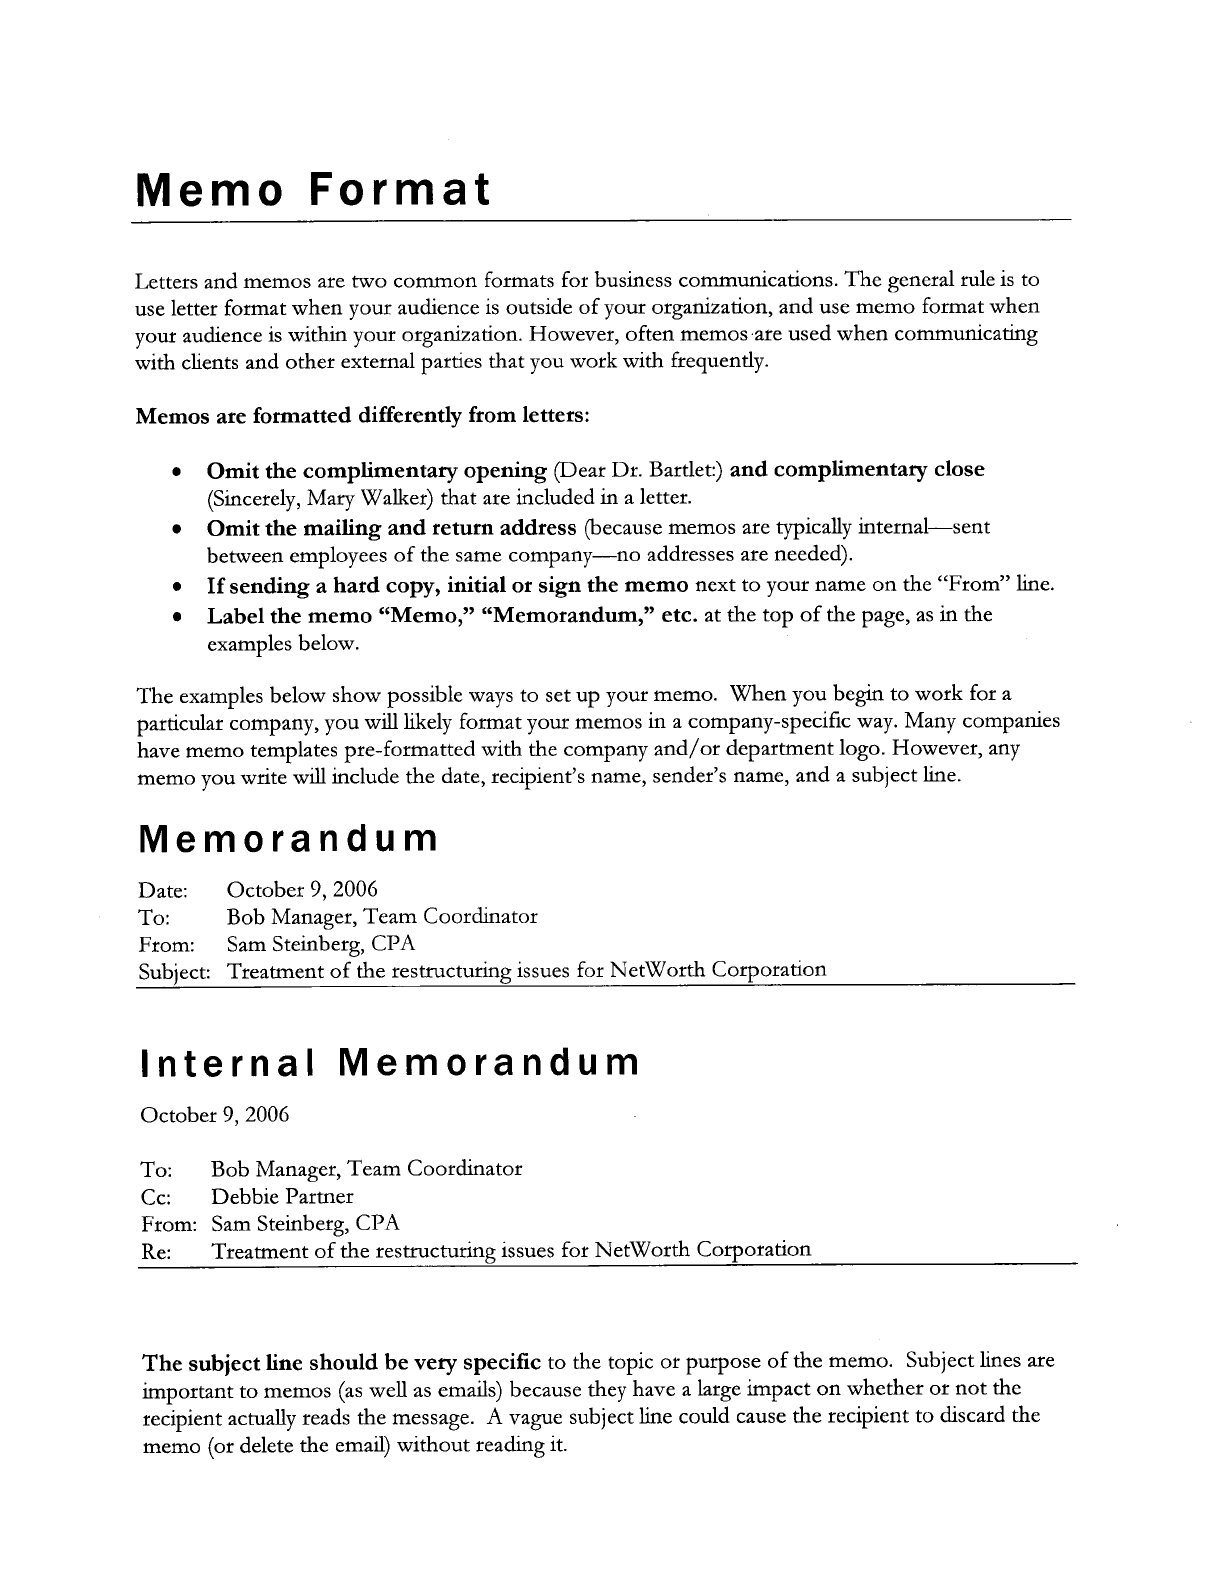 Download Memo Format Template for Free - TidyTemplates